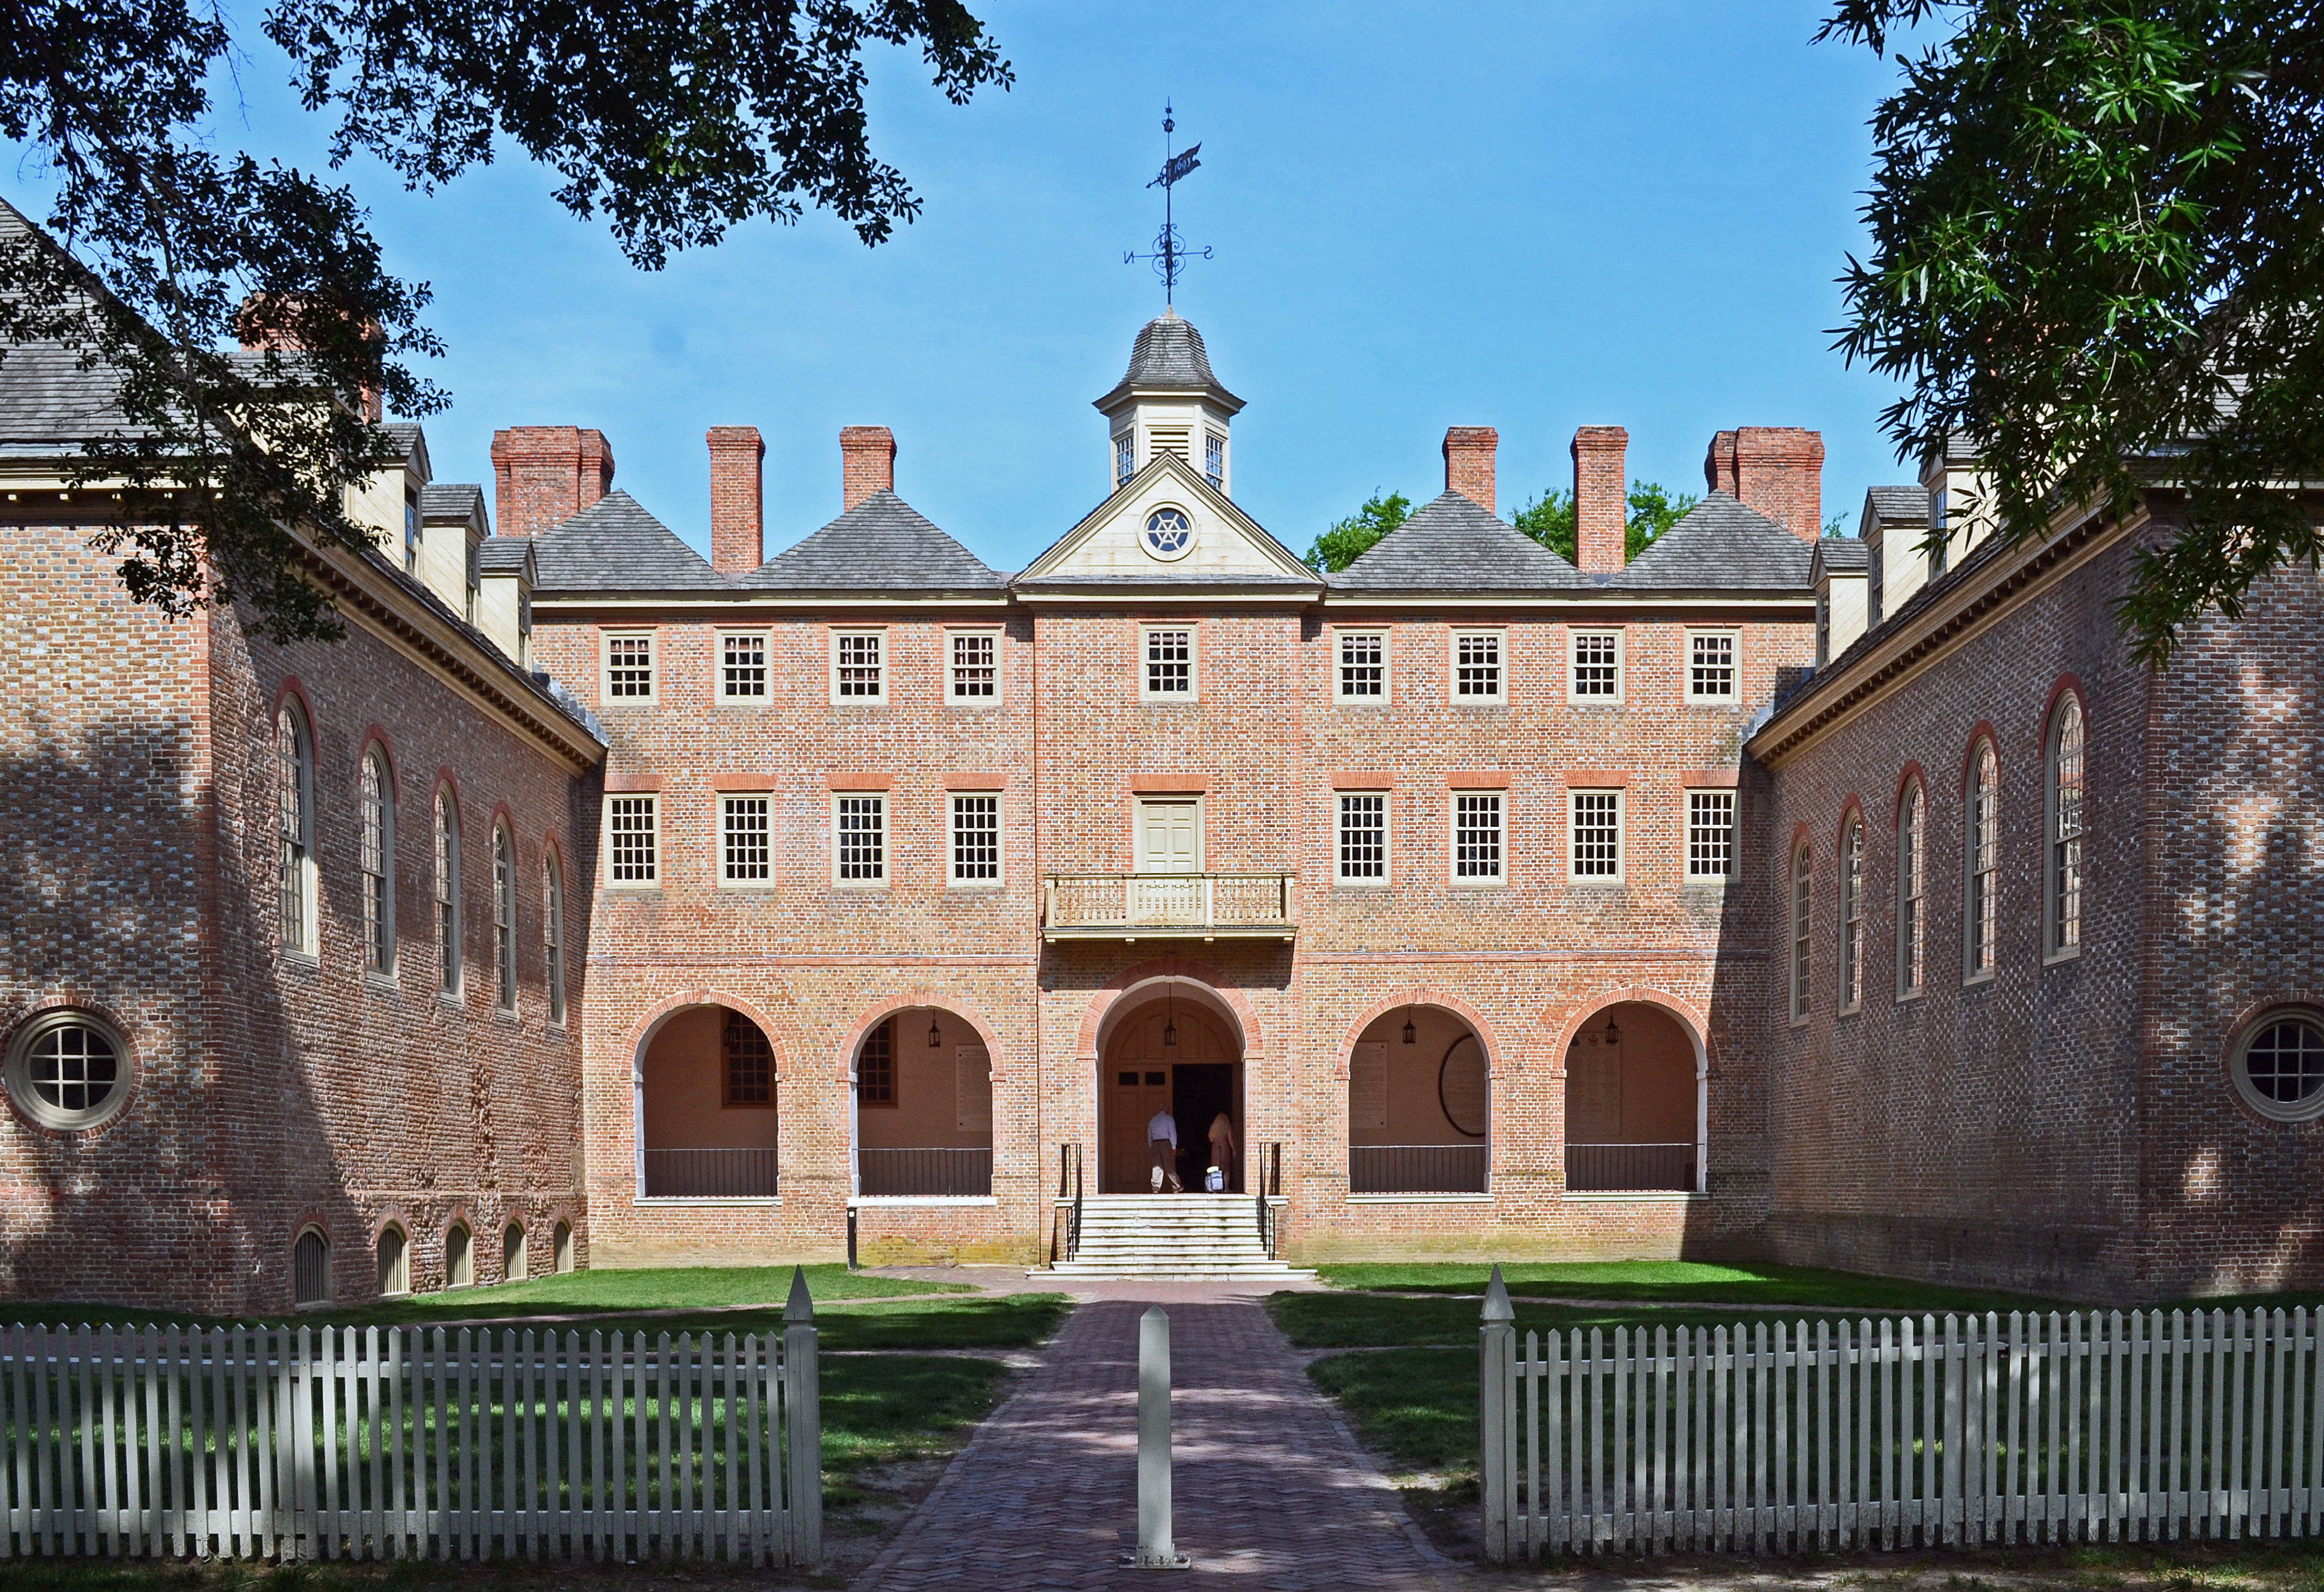 Wren Building (Old College Yard, College of William and Mary)